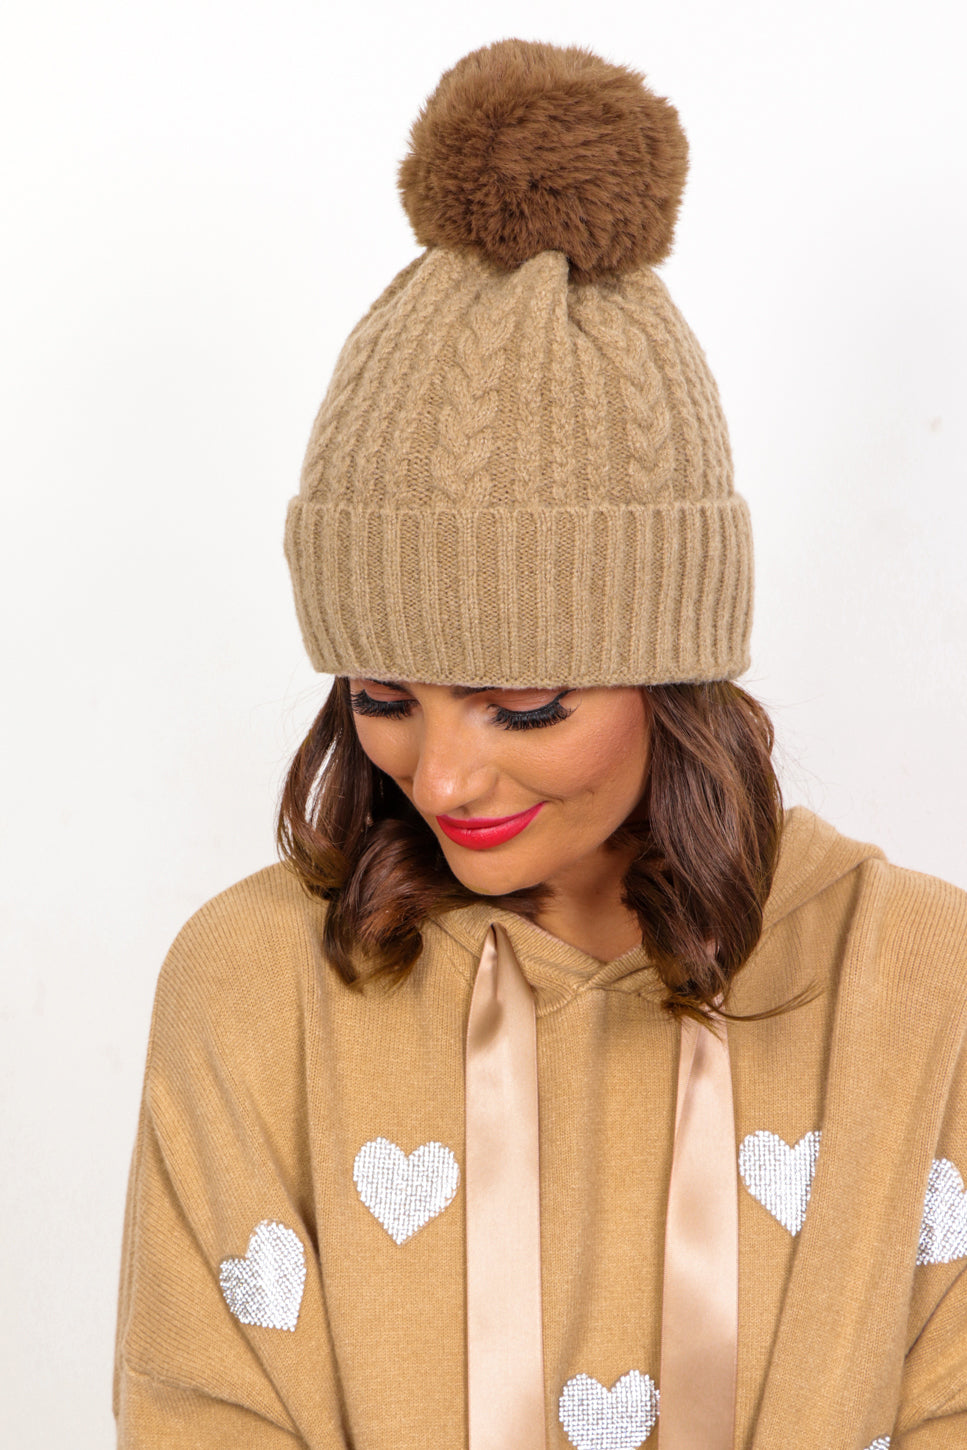 Warm Again - Taupe Cable Knit Pom Pom Hat